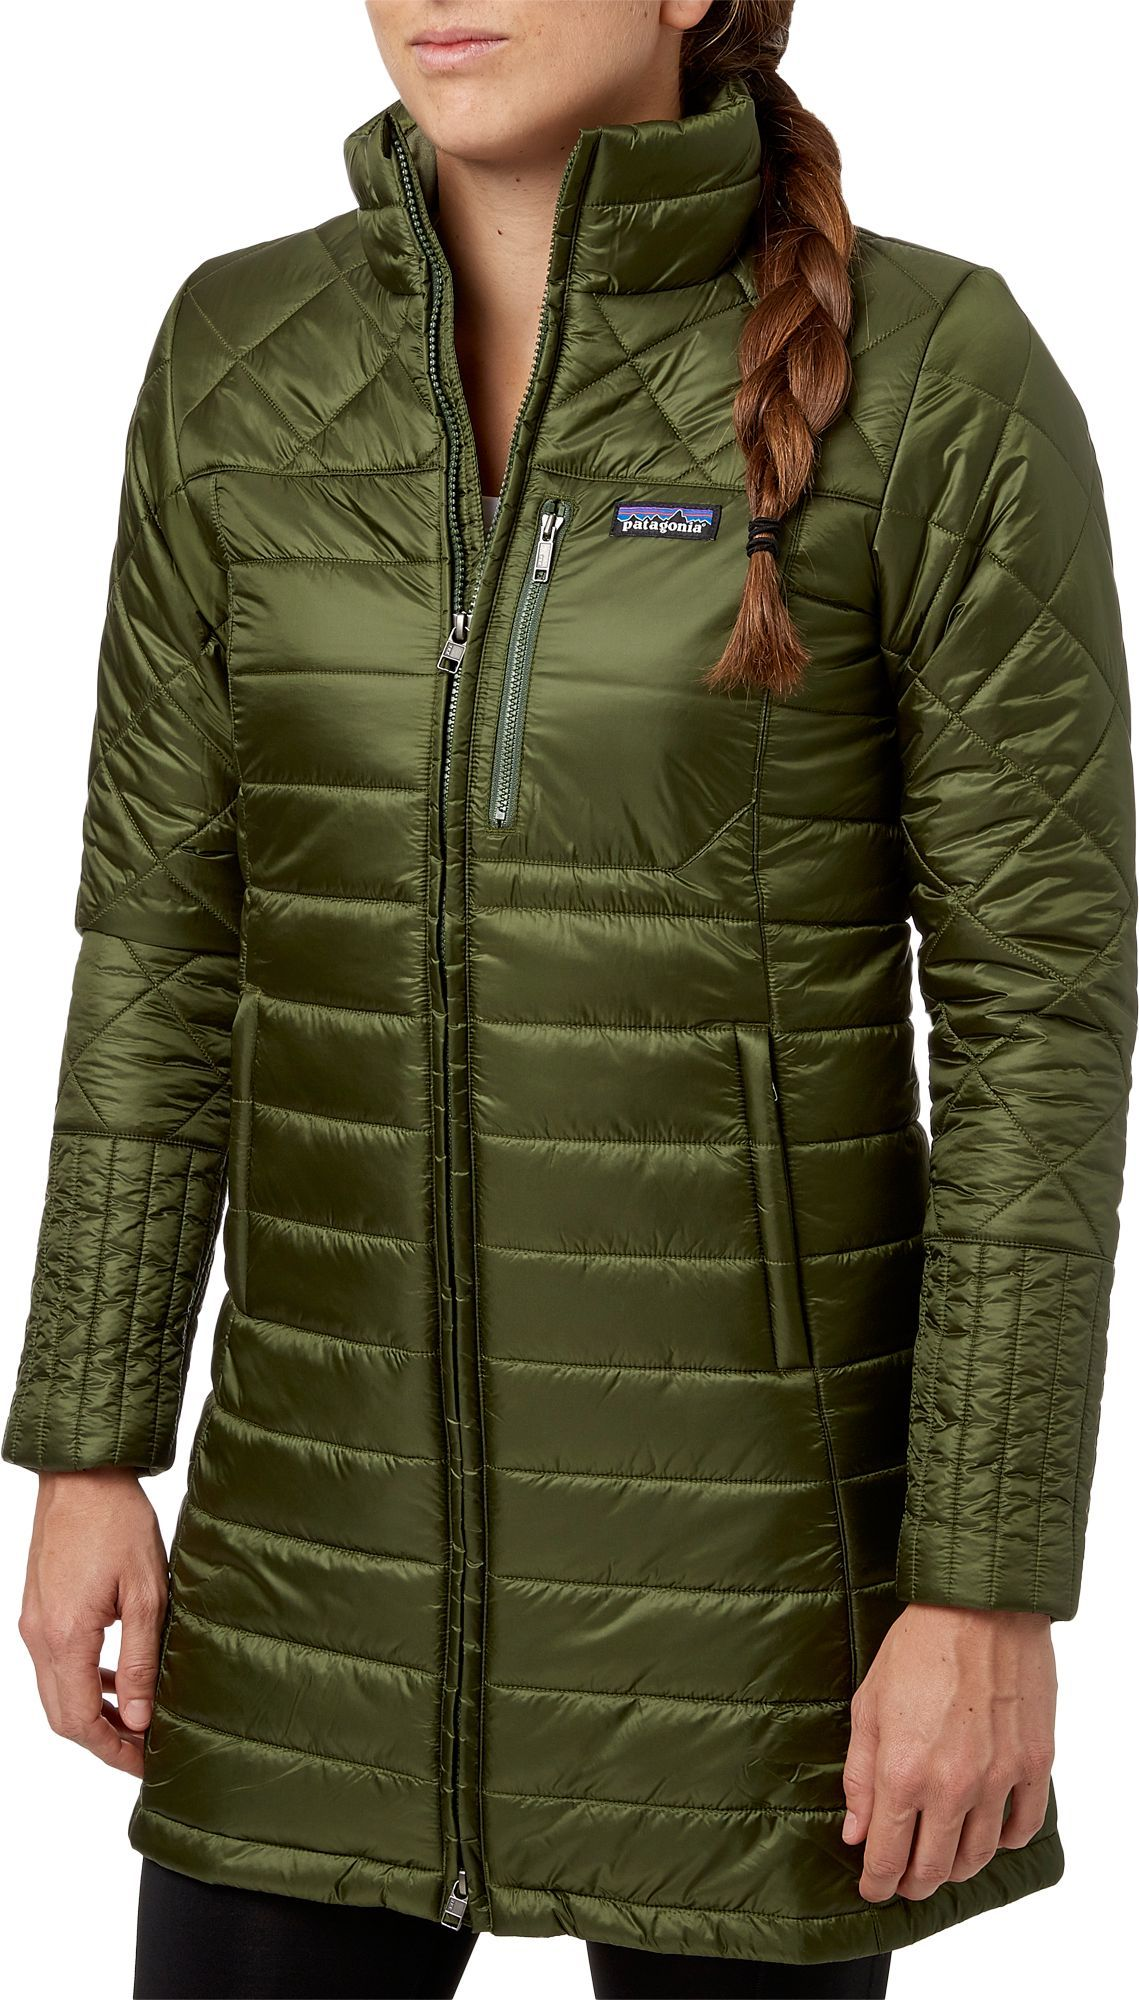 8760d1d6b Patagonia Women's Radalie Insulated Parka | Coats and jackets with ...